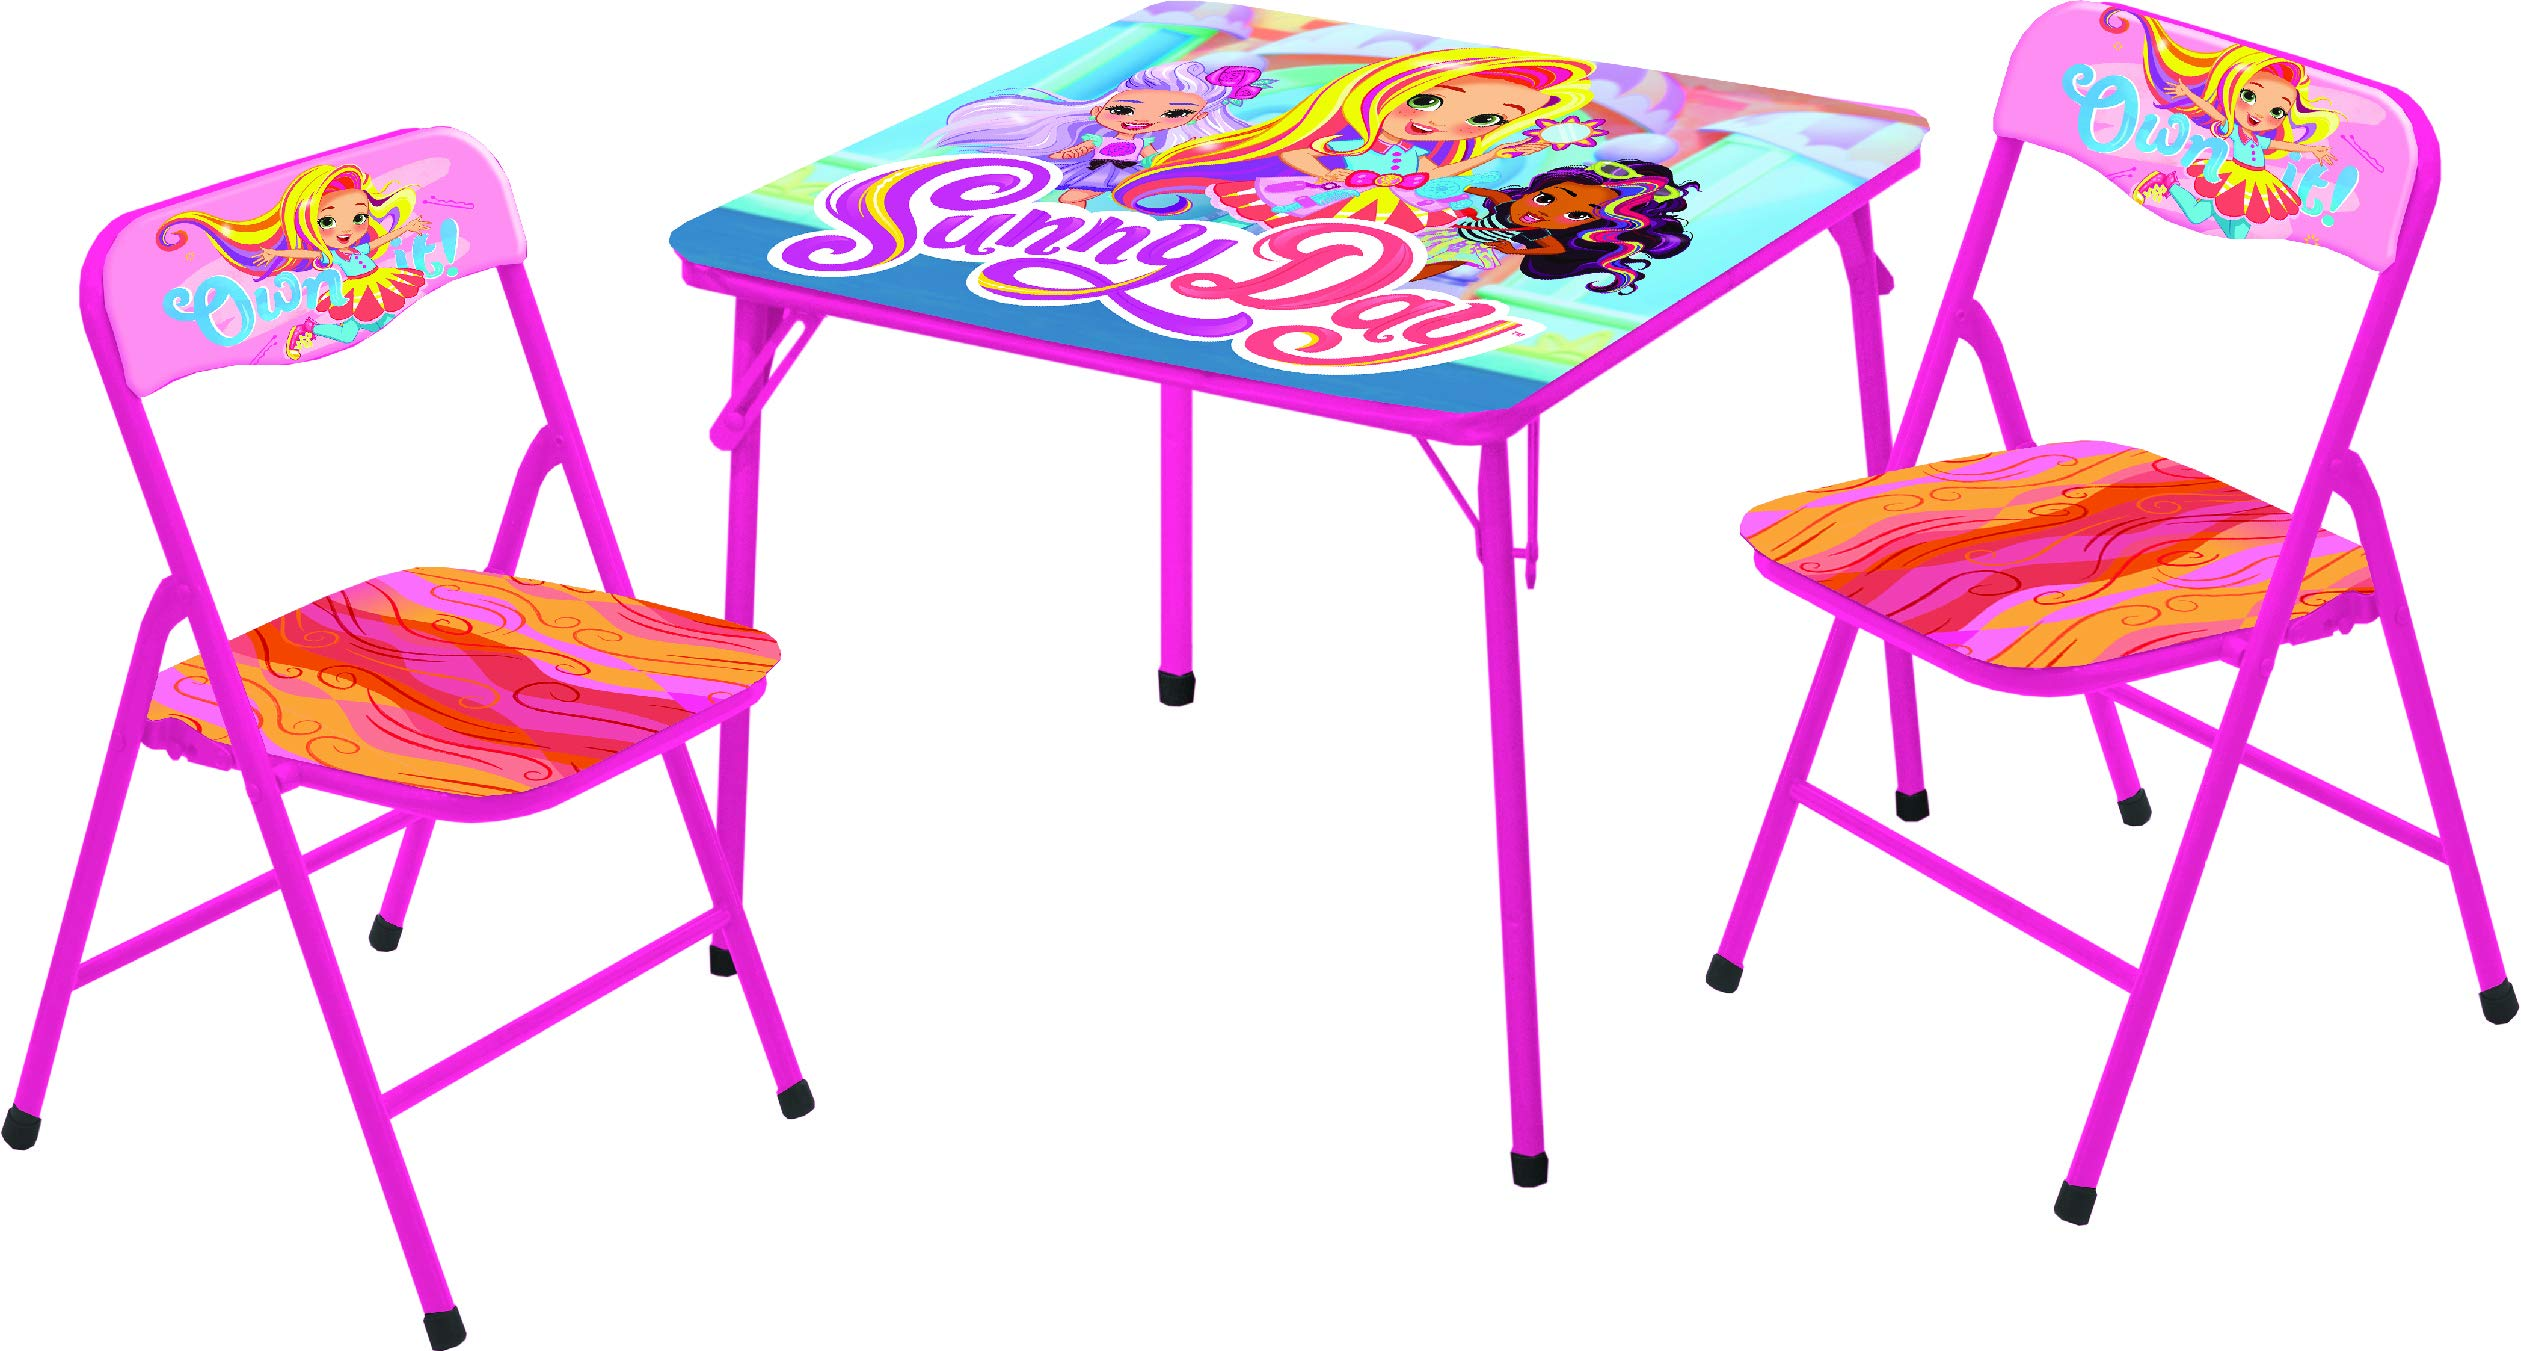 Nickelodeon Sunny Day 3 Pc Table & Chair Set, Multicolor by Nickelodeon